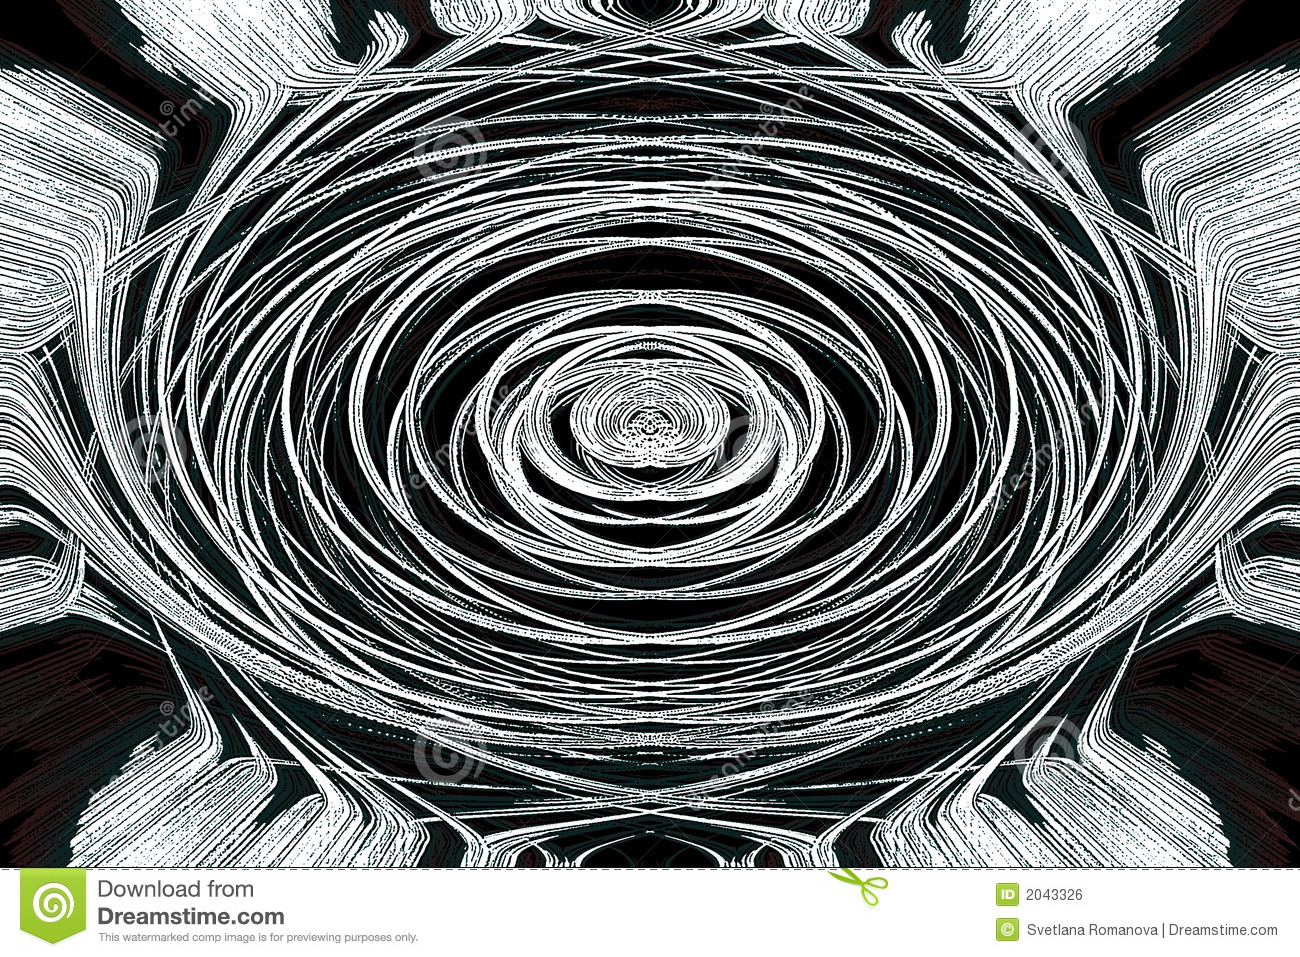 Mystical Art Abstract Graphic Wallpaper Royalty Free Stock